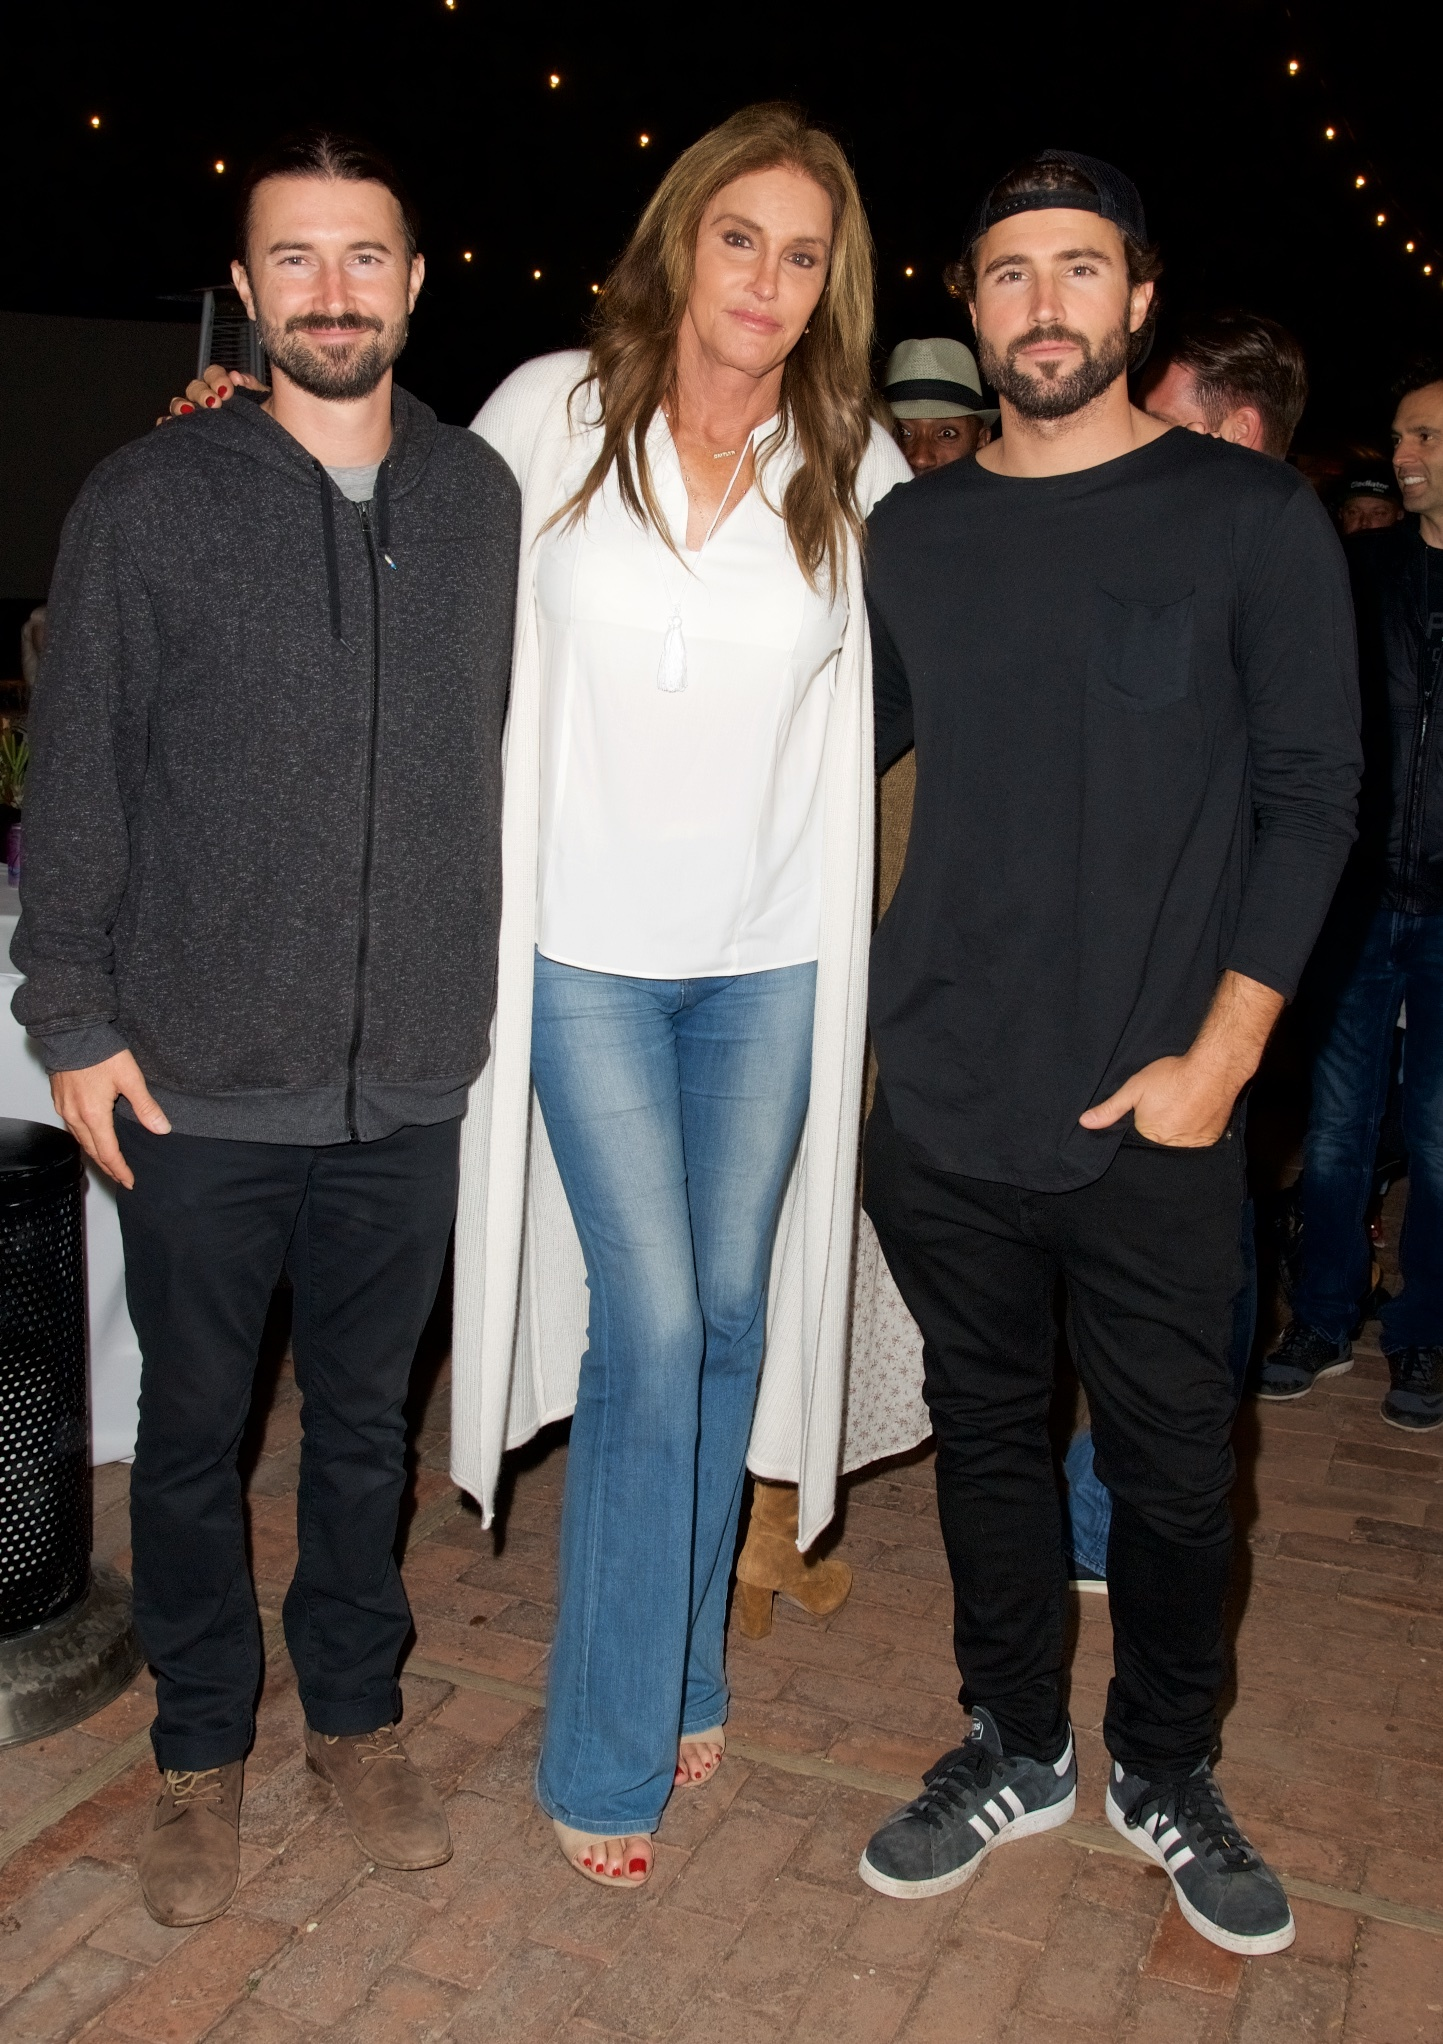 """Brandon Jenner, Caitlyn Jenner and Brody Jenner attend Brandon's record release party for """"Burning Ground"""" in Malibu on Nov. 19, 2016."""